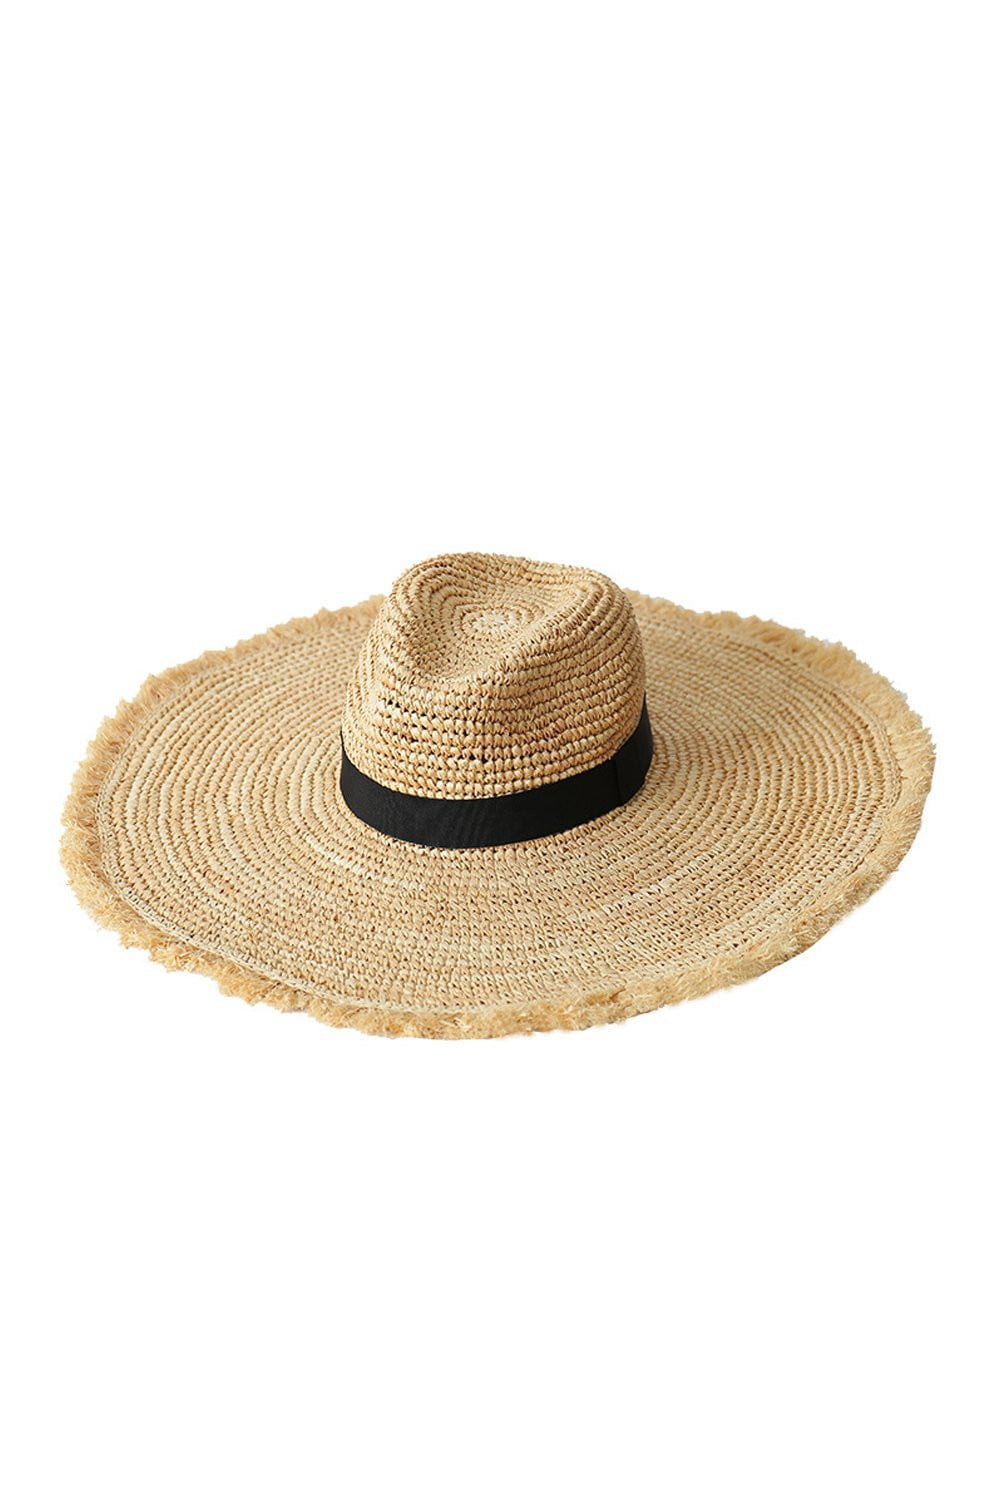 Black Trim Raffia Straw Edging Fedora Hat (2207889850427)